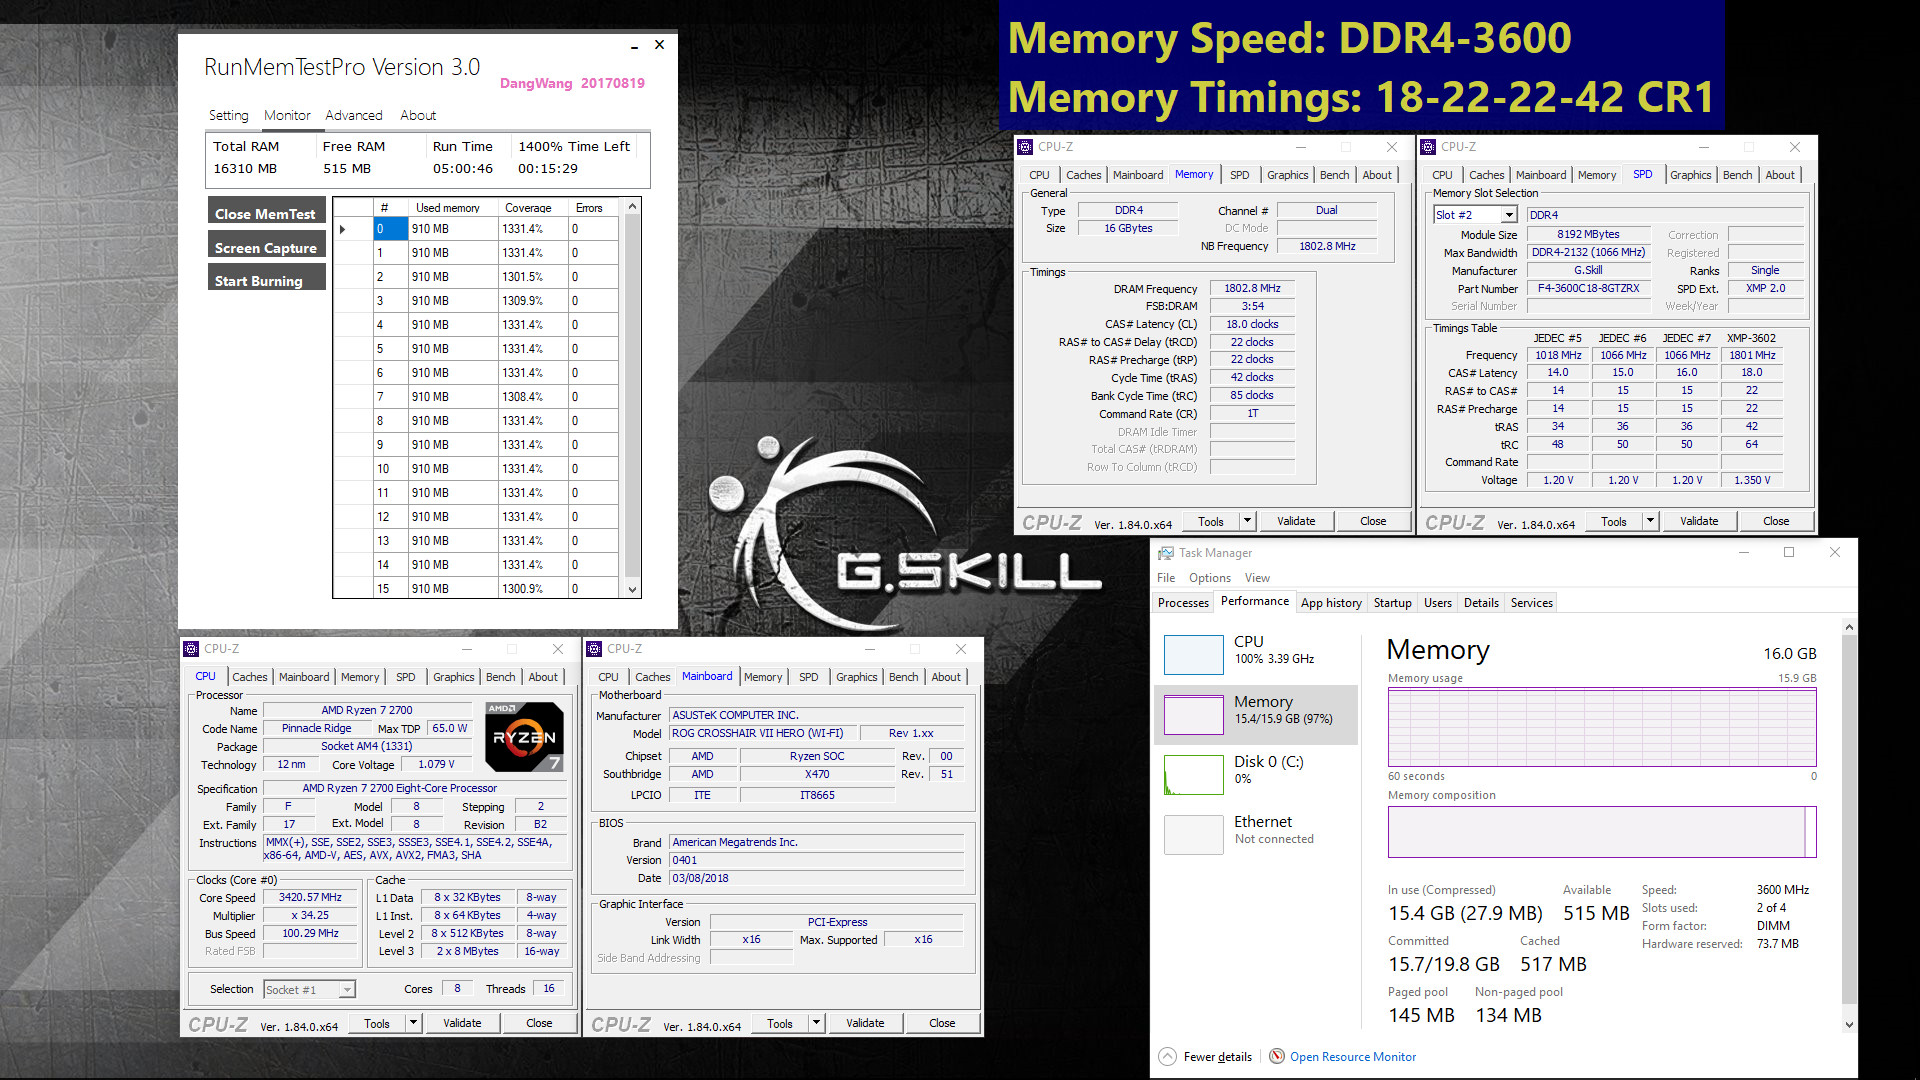 G Skill Announces New Kits and Specifications For AMD Ryzen